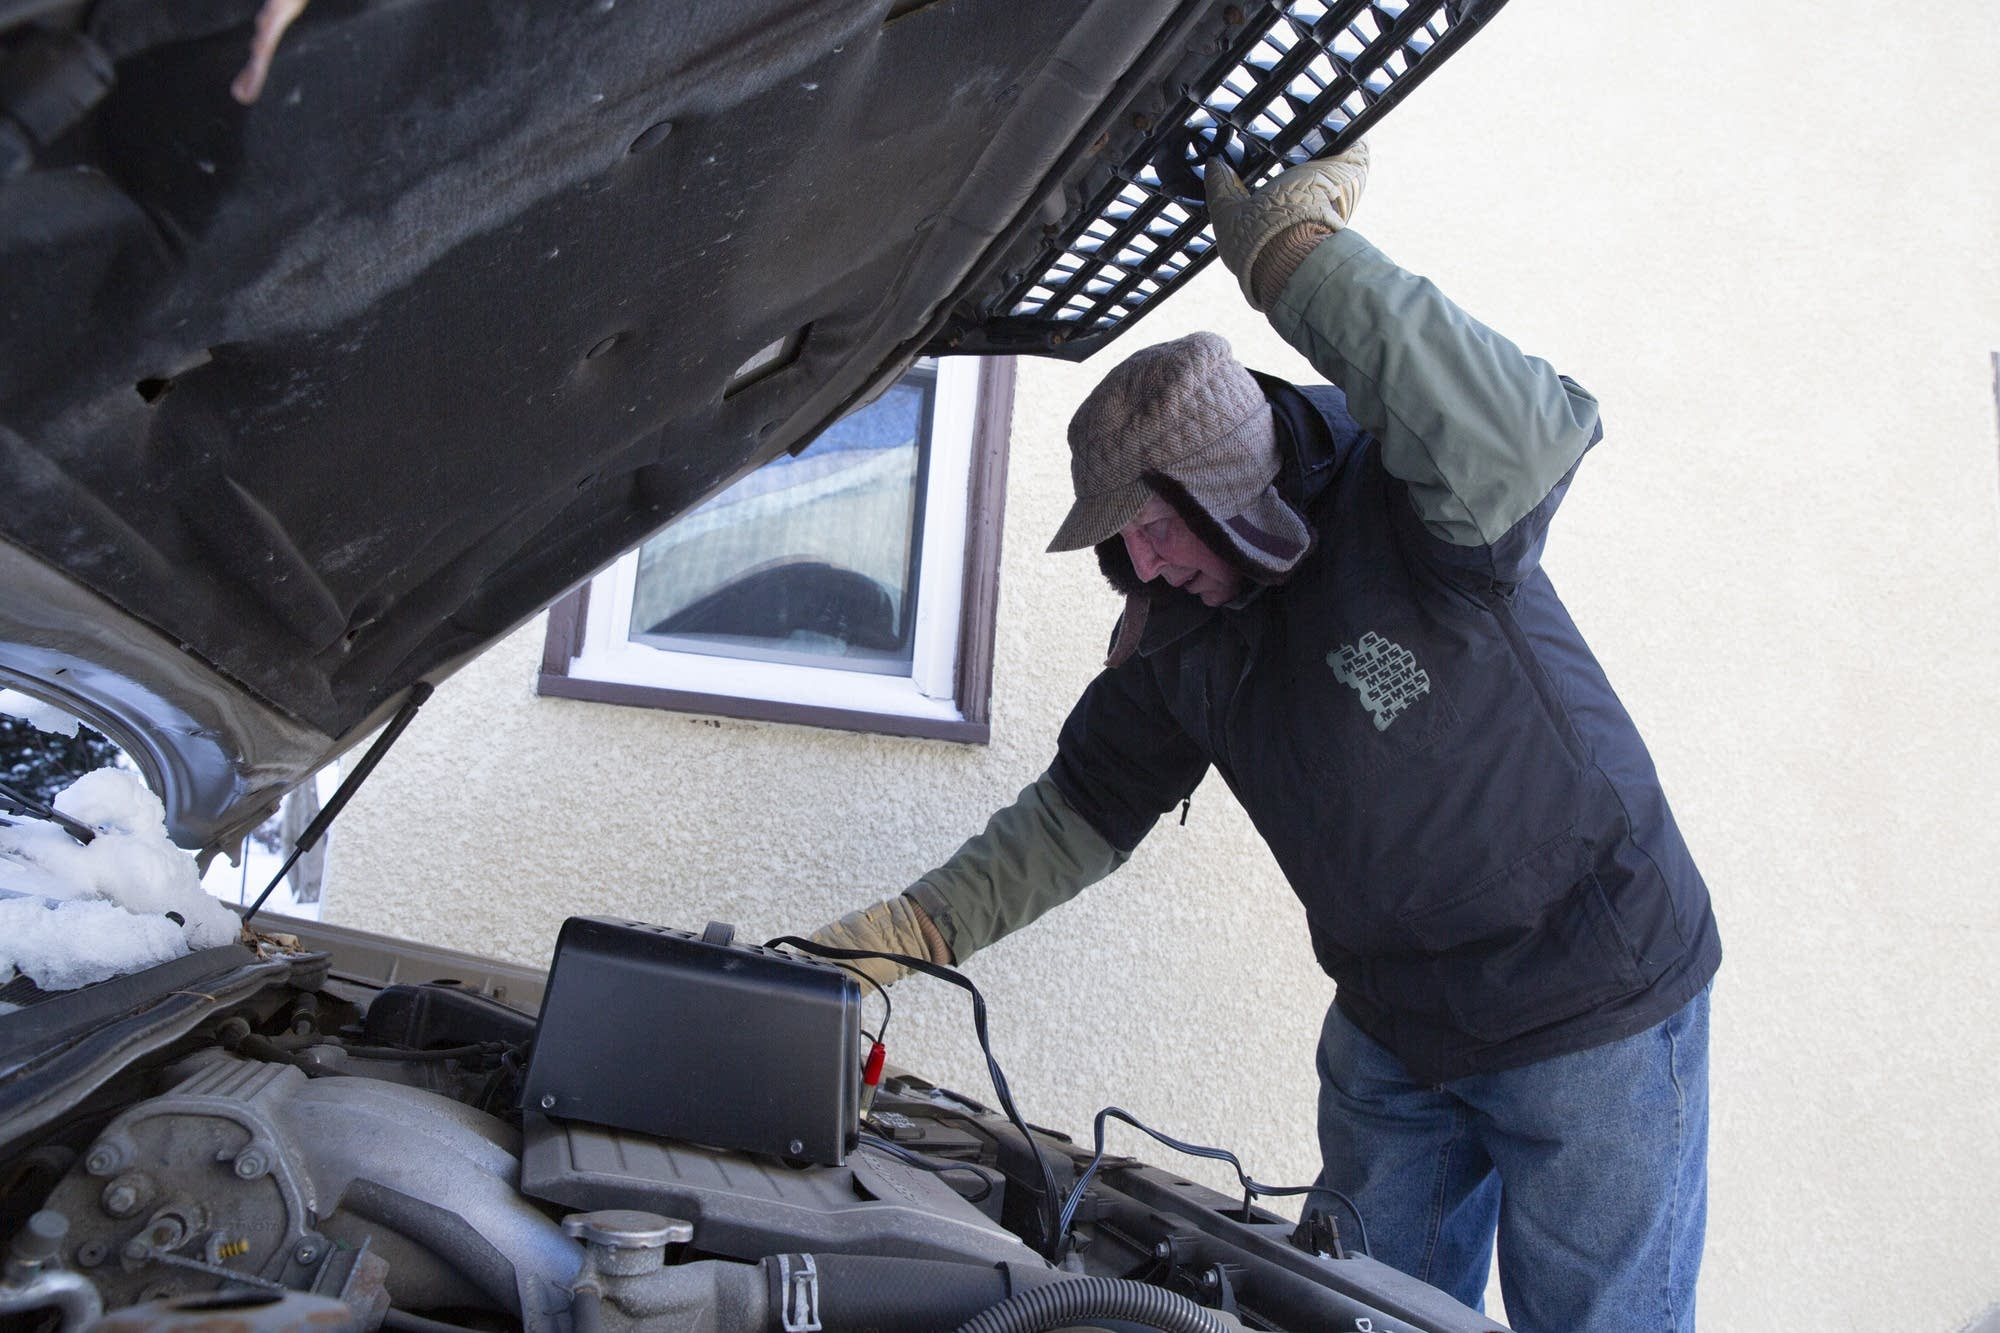 Leonard Elits of St. Paul uses a charger to jump start his car.